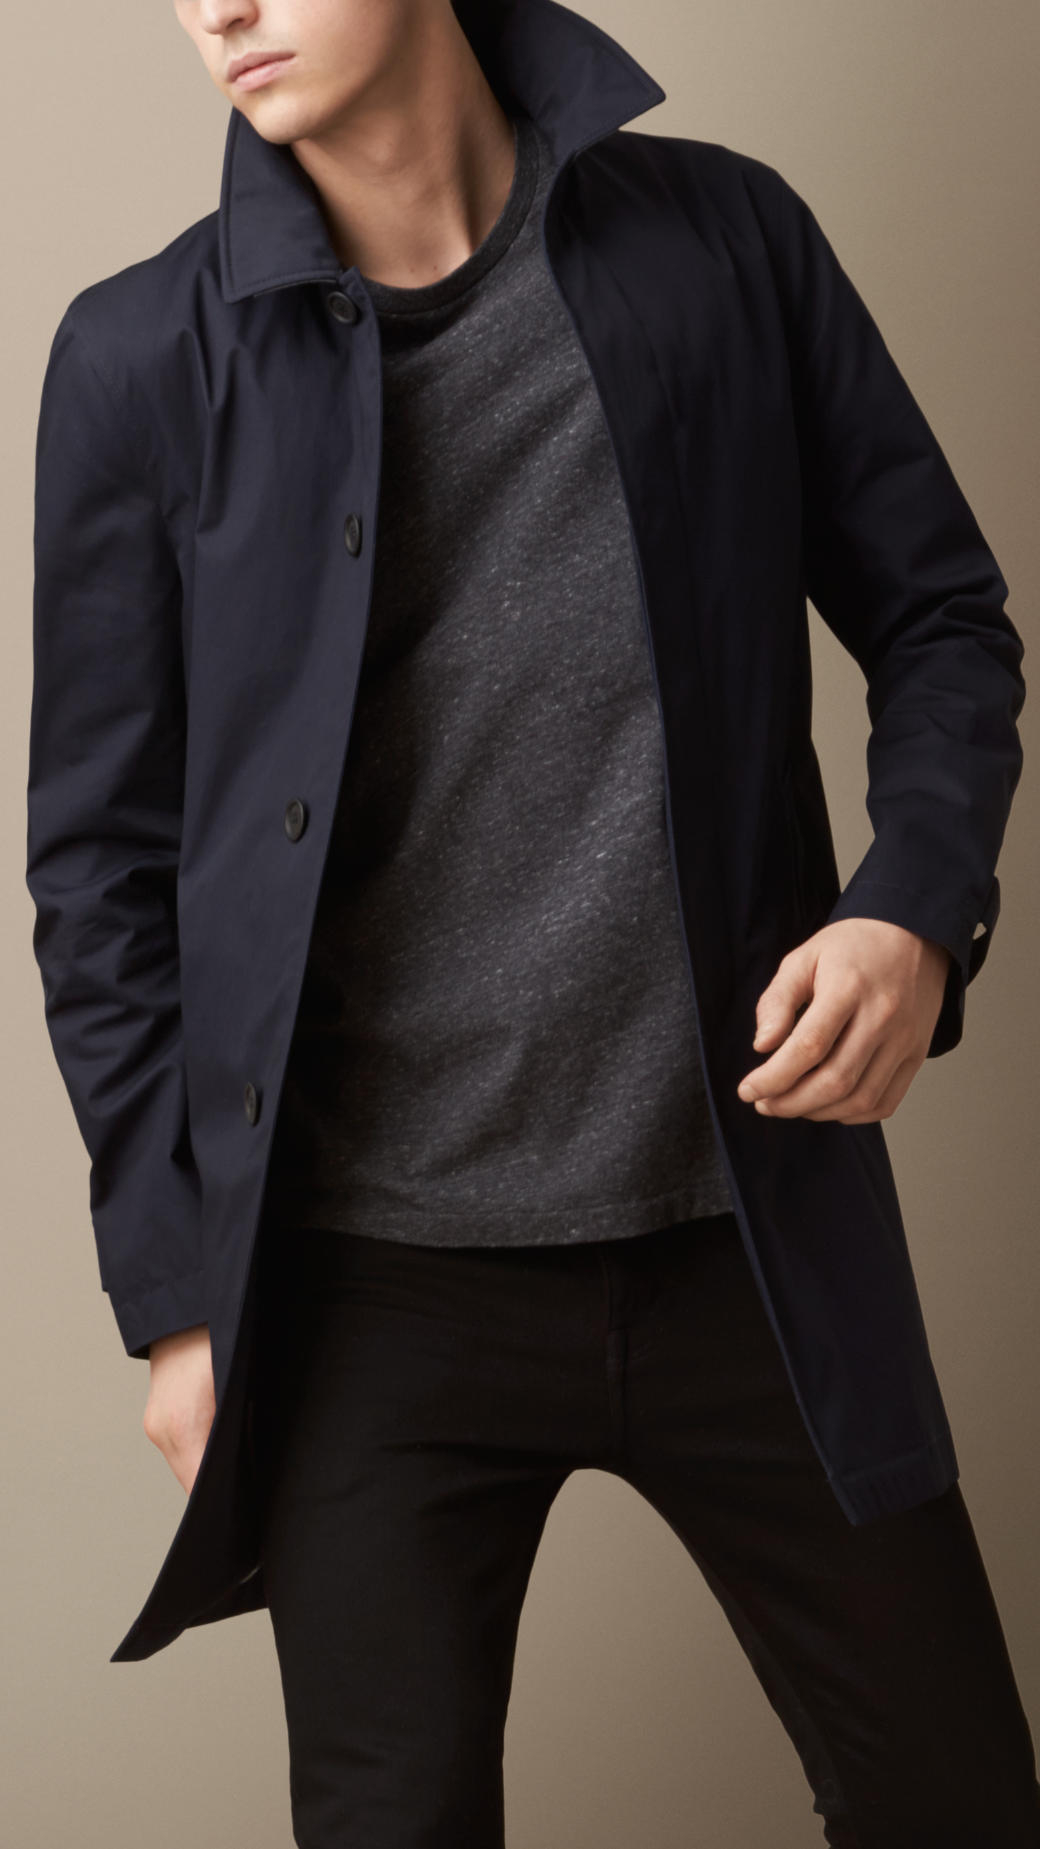 coats single guys Free shipping and returns on men's wool & wool blend coats & jackets at nordstromcom.